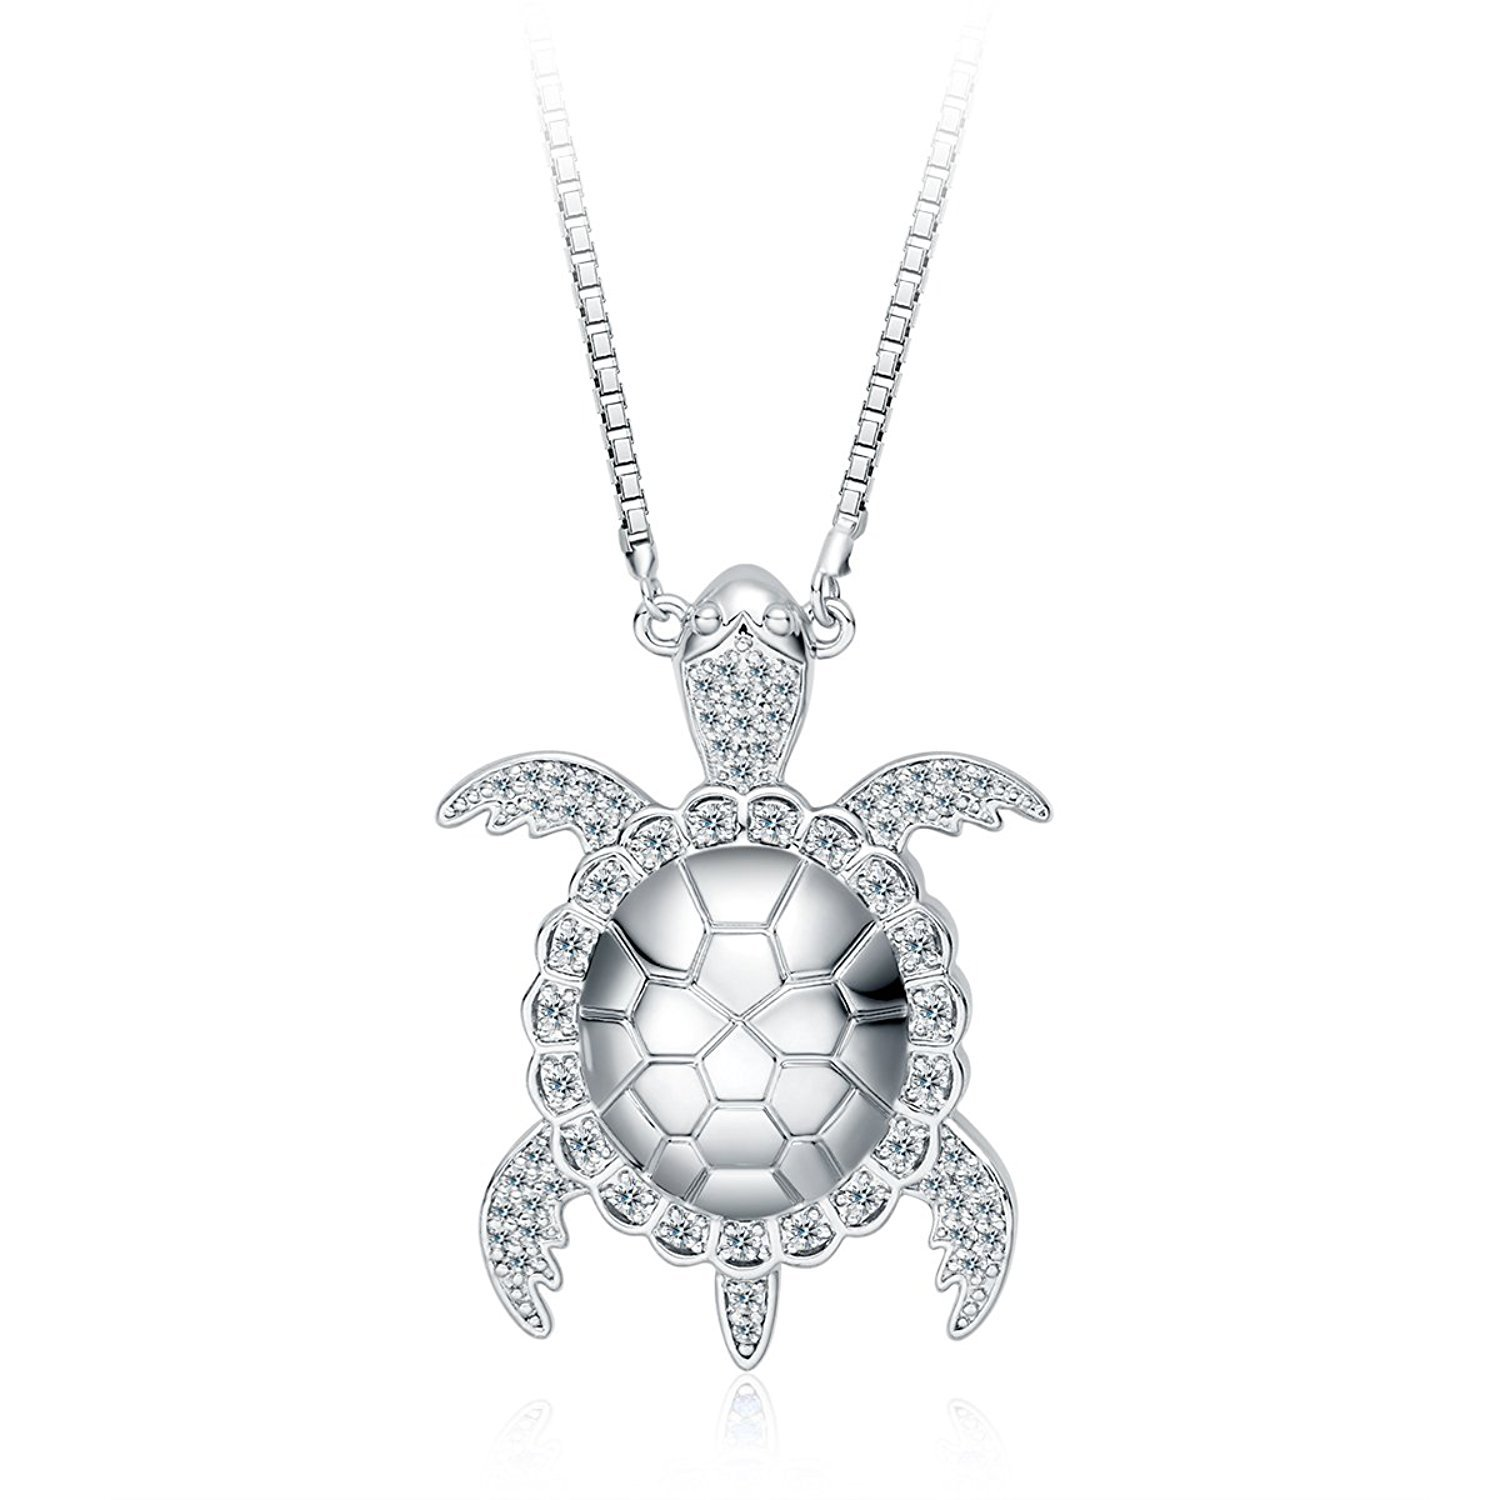 Ado Glo Her Birthday Gifts - 'Sea Turtle' Pendant Necklace - Fashion Jewelry for Women Girls - Anniversary Present for Her, Best Friends